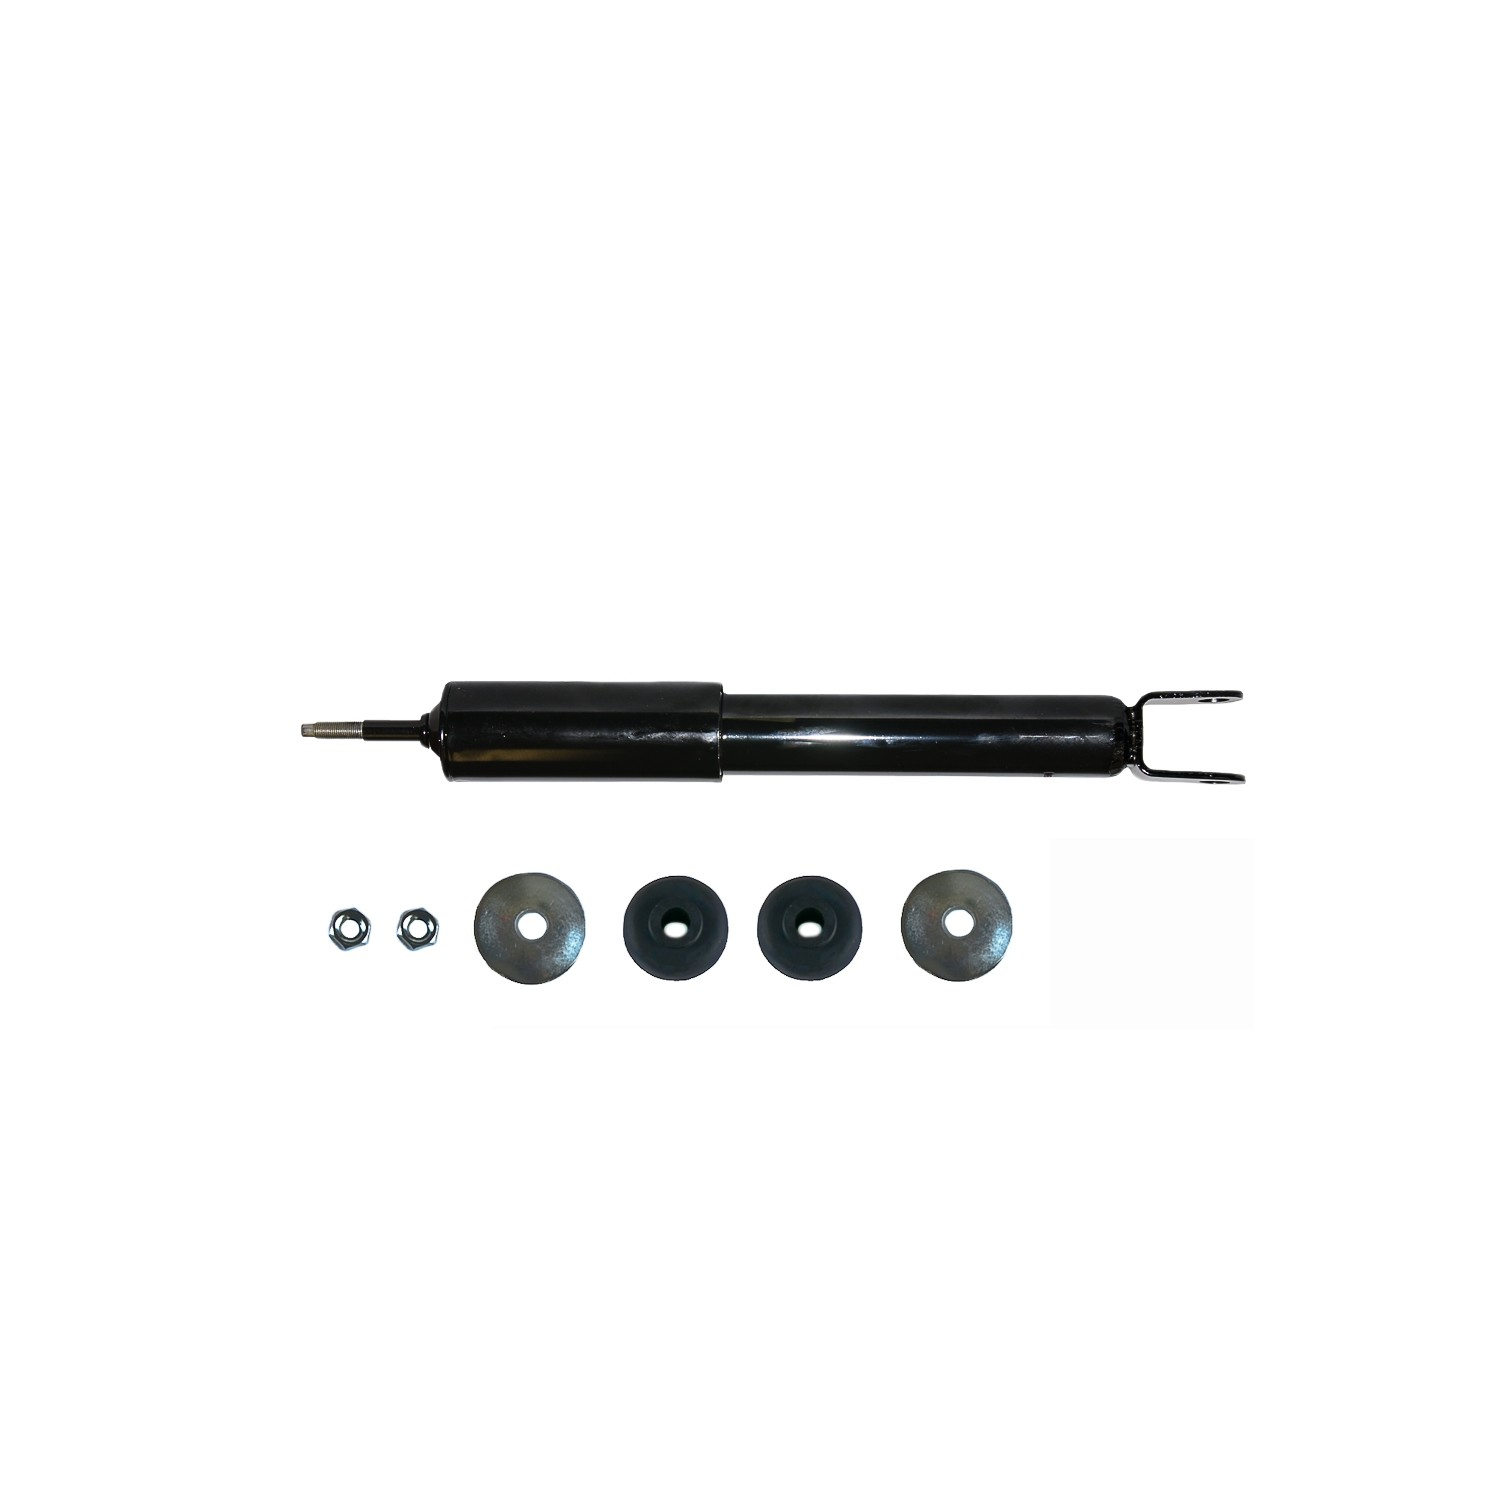 ACDELCO ADVANTAGE - Gas Charged Shock Absorber - DCD 520-431